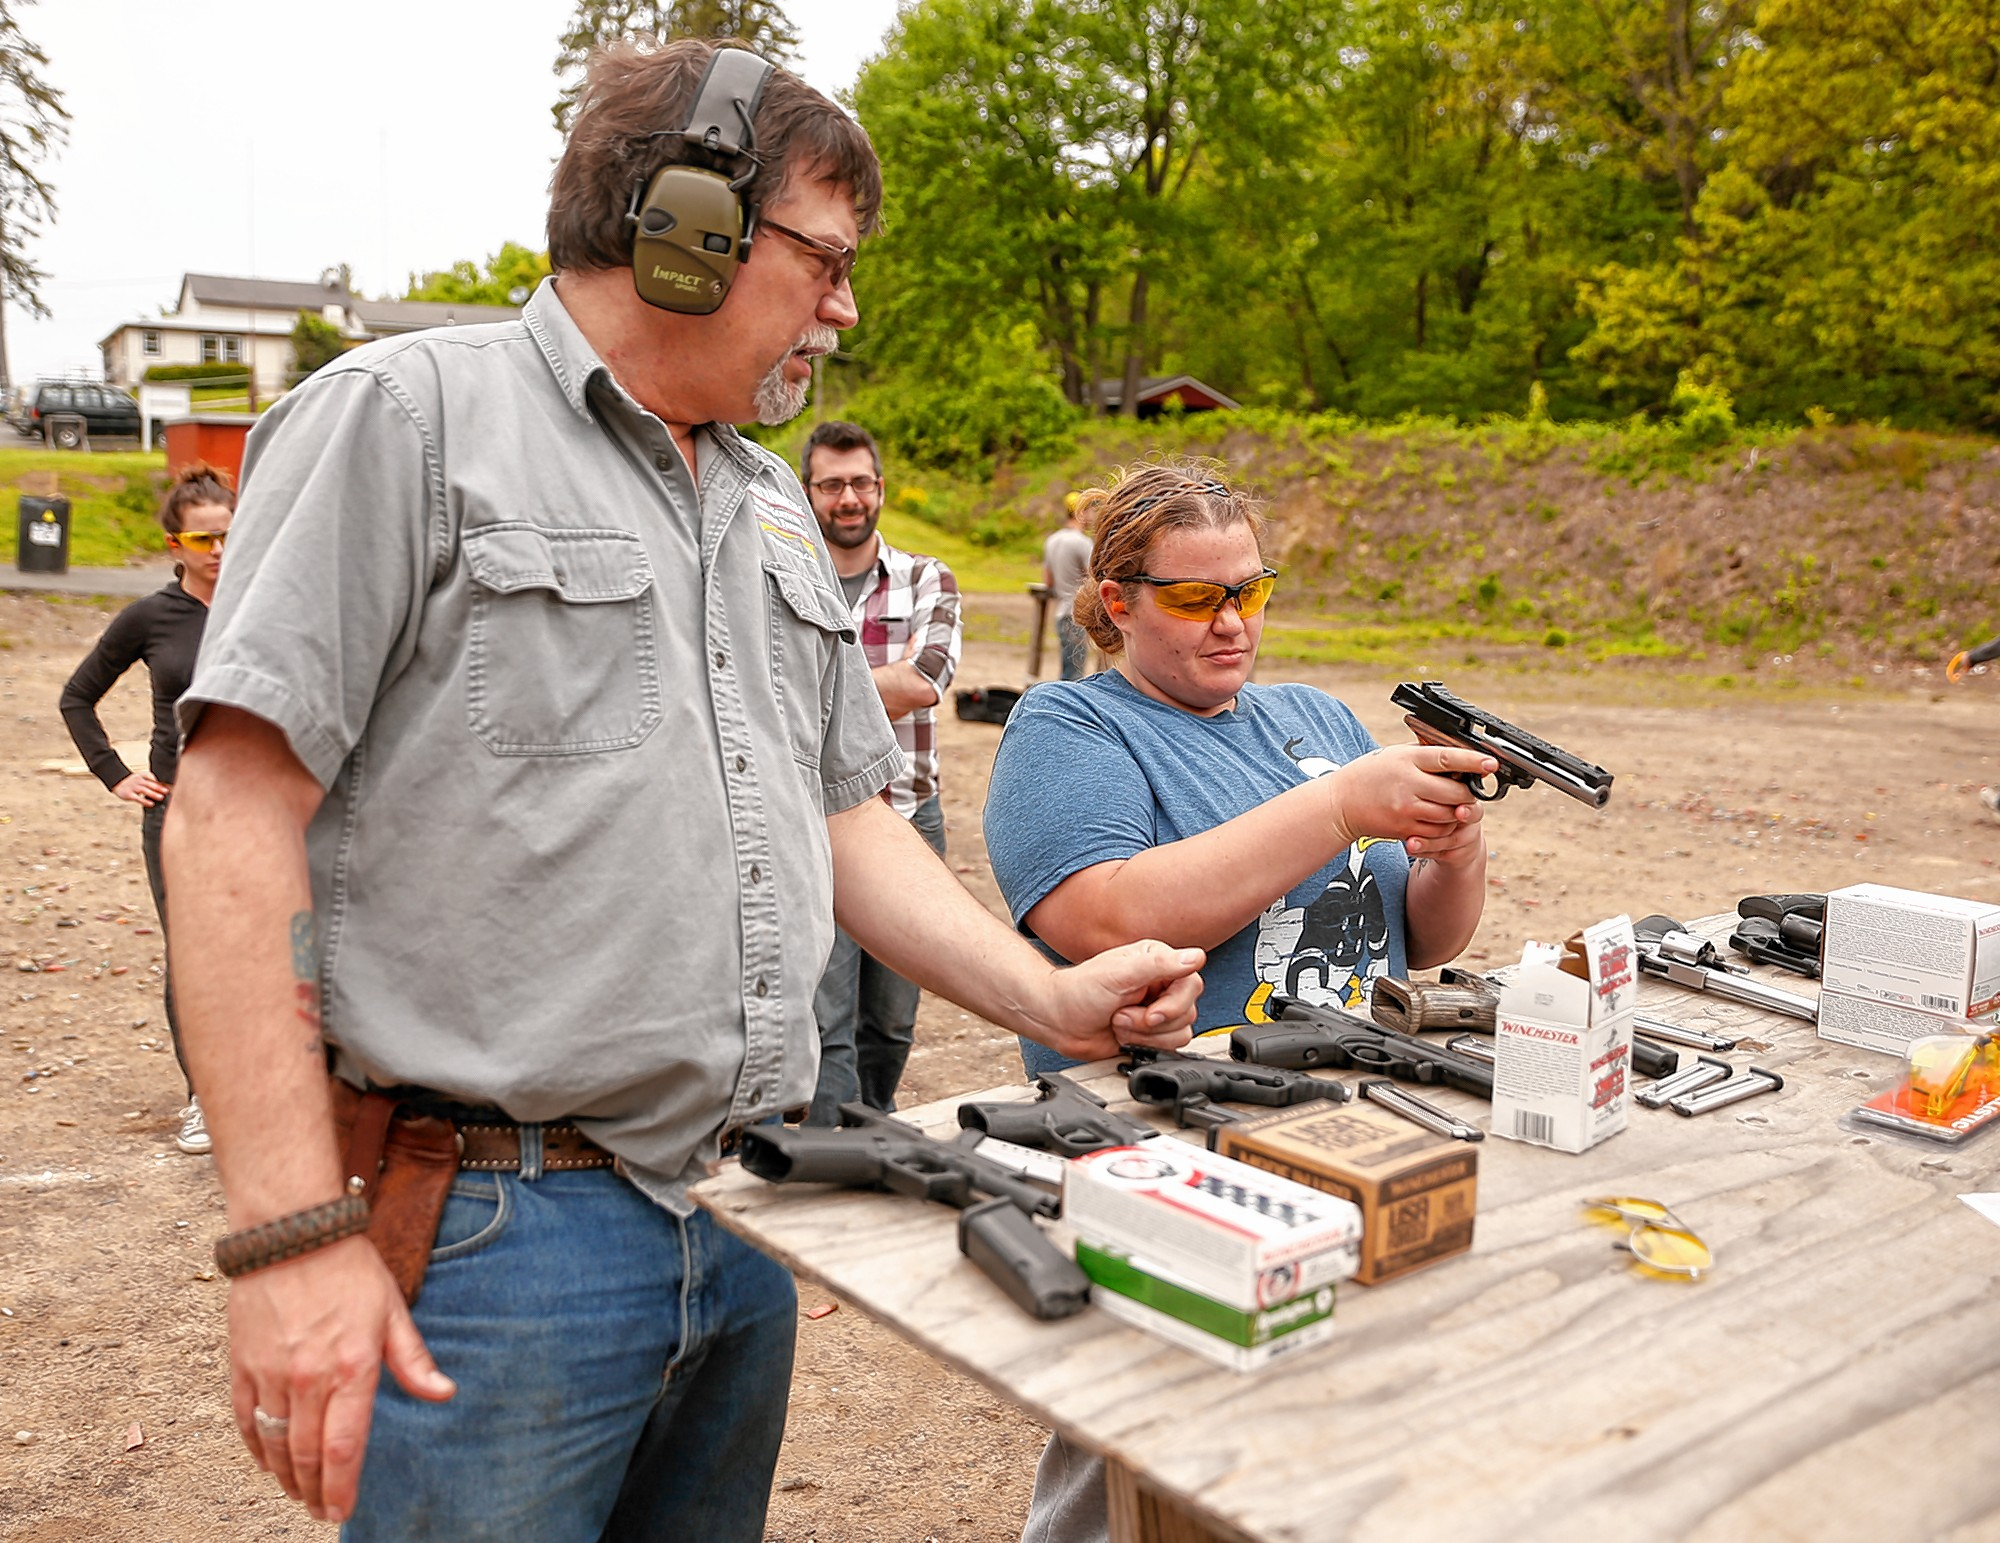 Instructor Kirk Whatley, left, helps Rebecca Stupski, of Hardwick, select a pistol to practice firing during a group firearms training class Saturday at Norwottuck Fish and Game in Amherst.